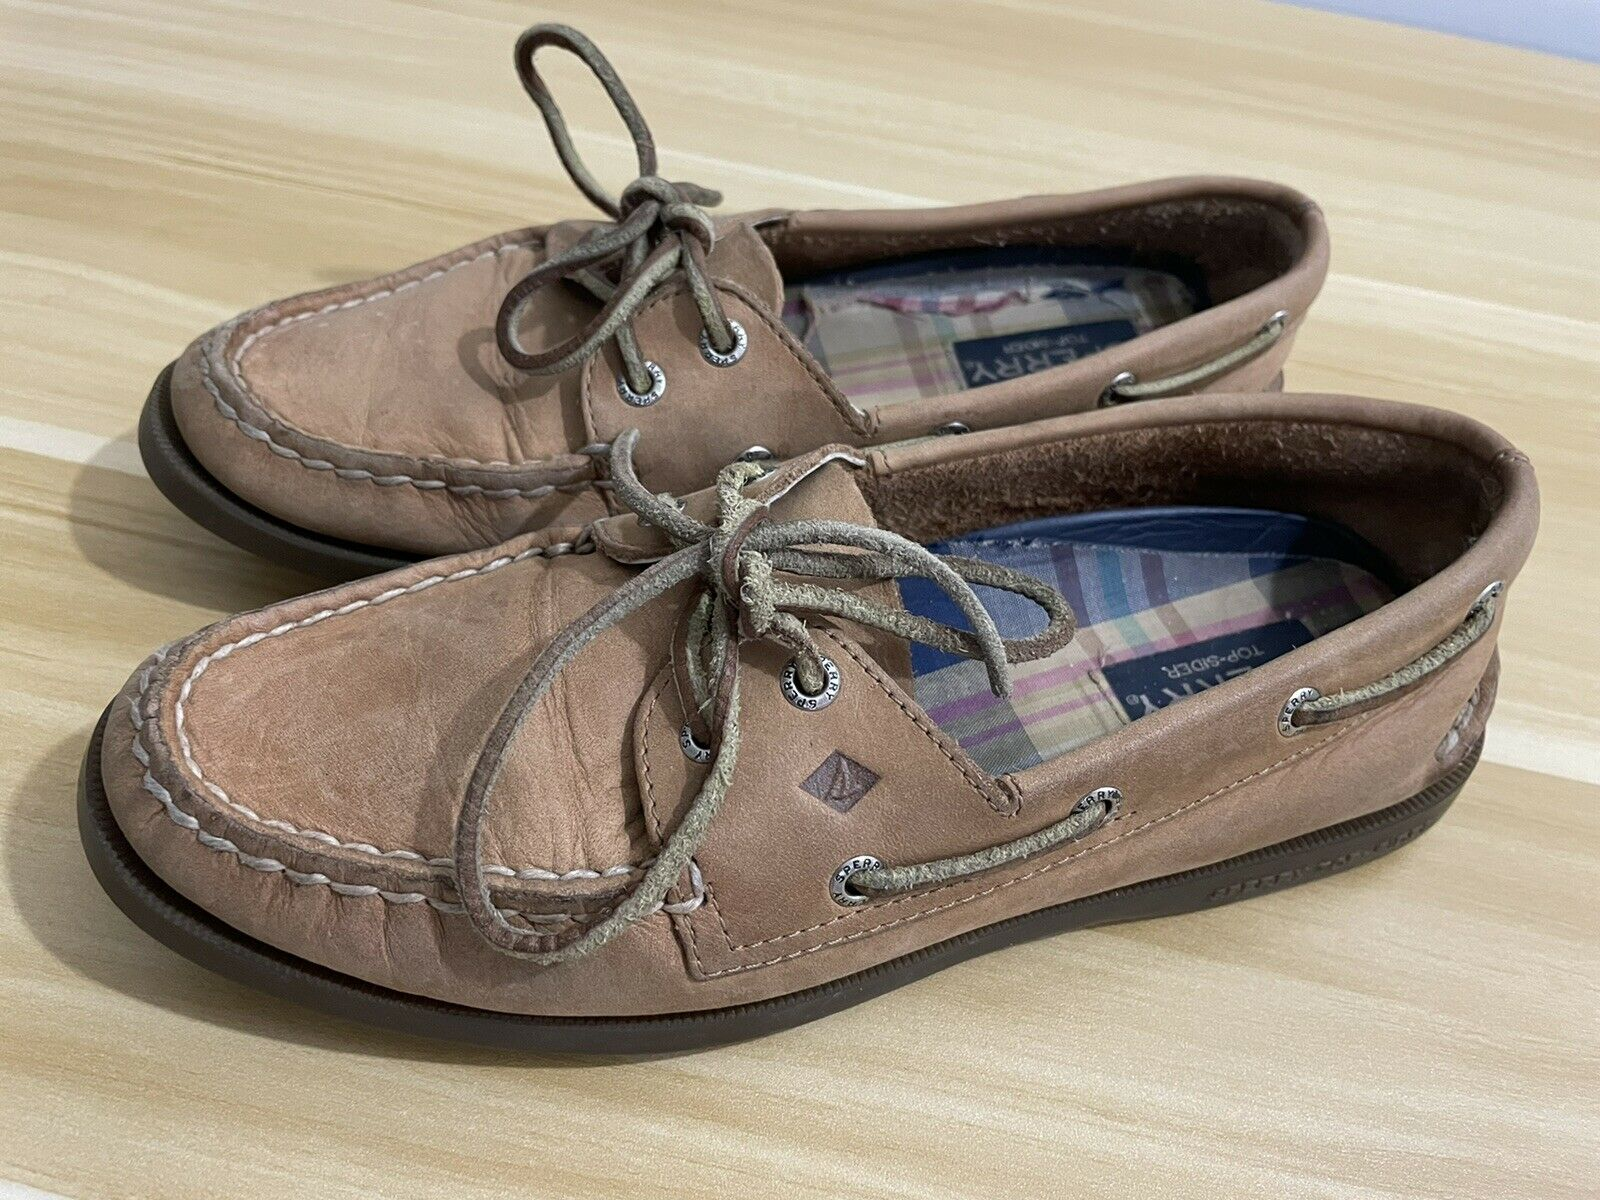 Sperry Top-Sider Women's Boat Shoes Size 7M A-18 61510 9155240